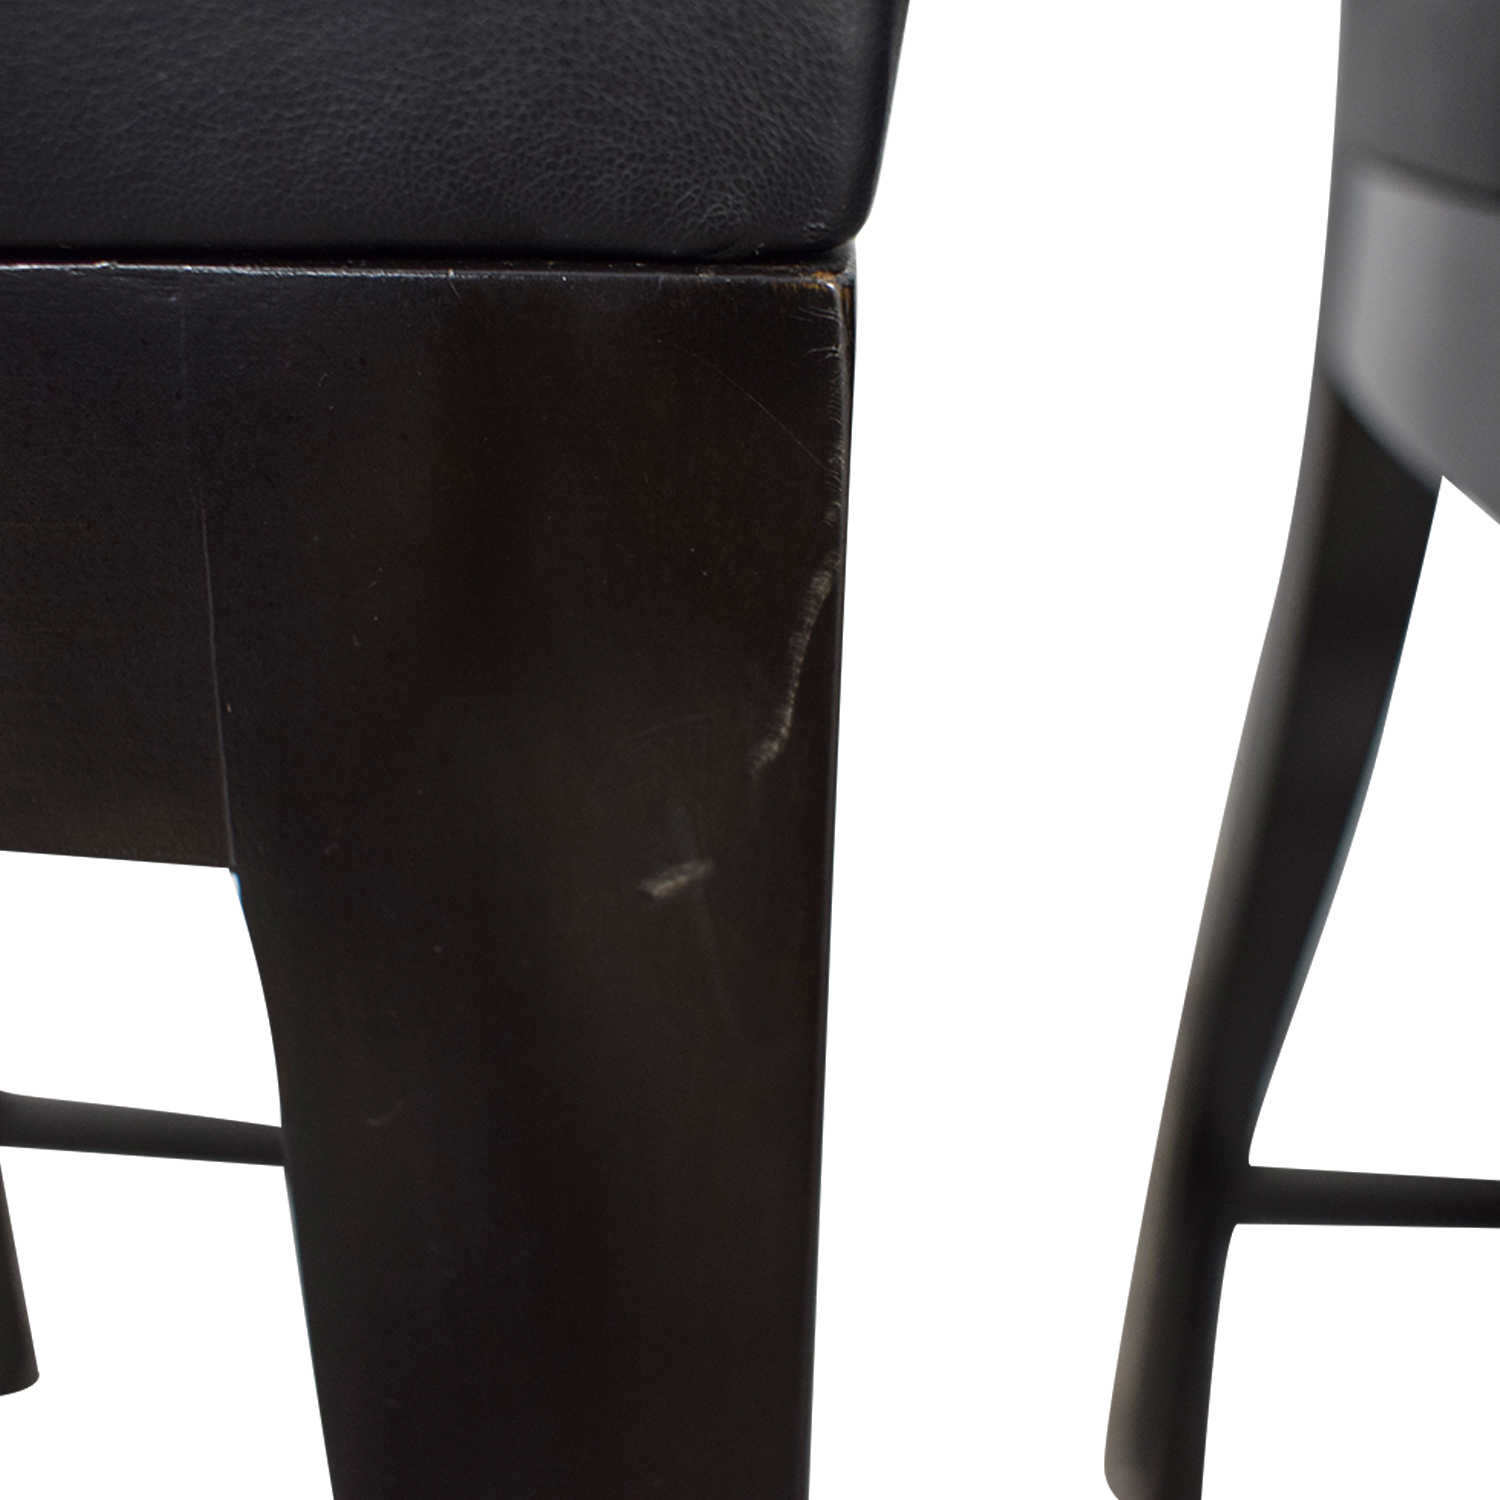 Furniture Masters Furniture Masters Black Bar Stools dimensions